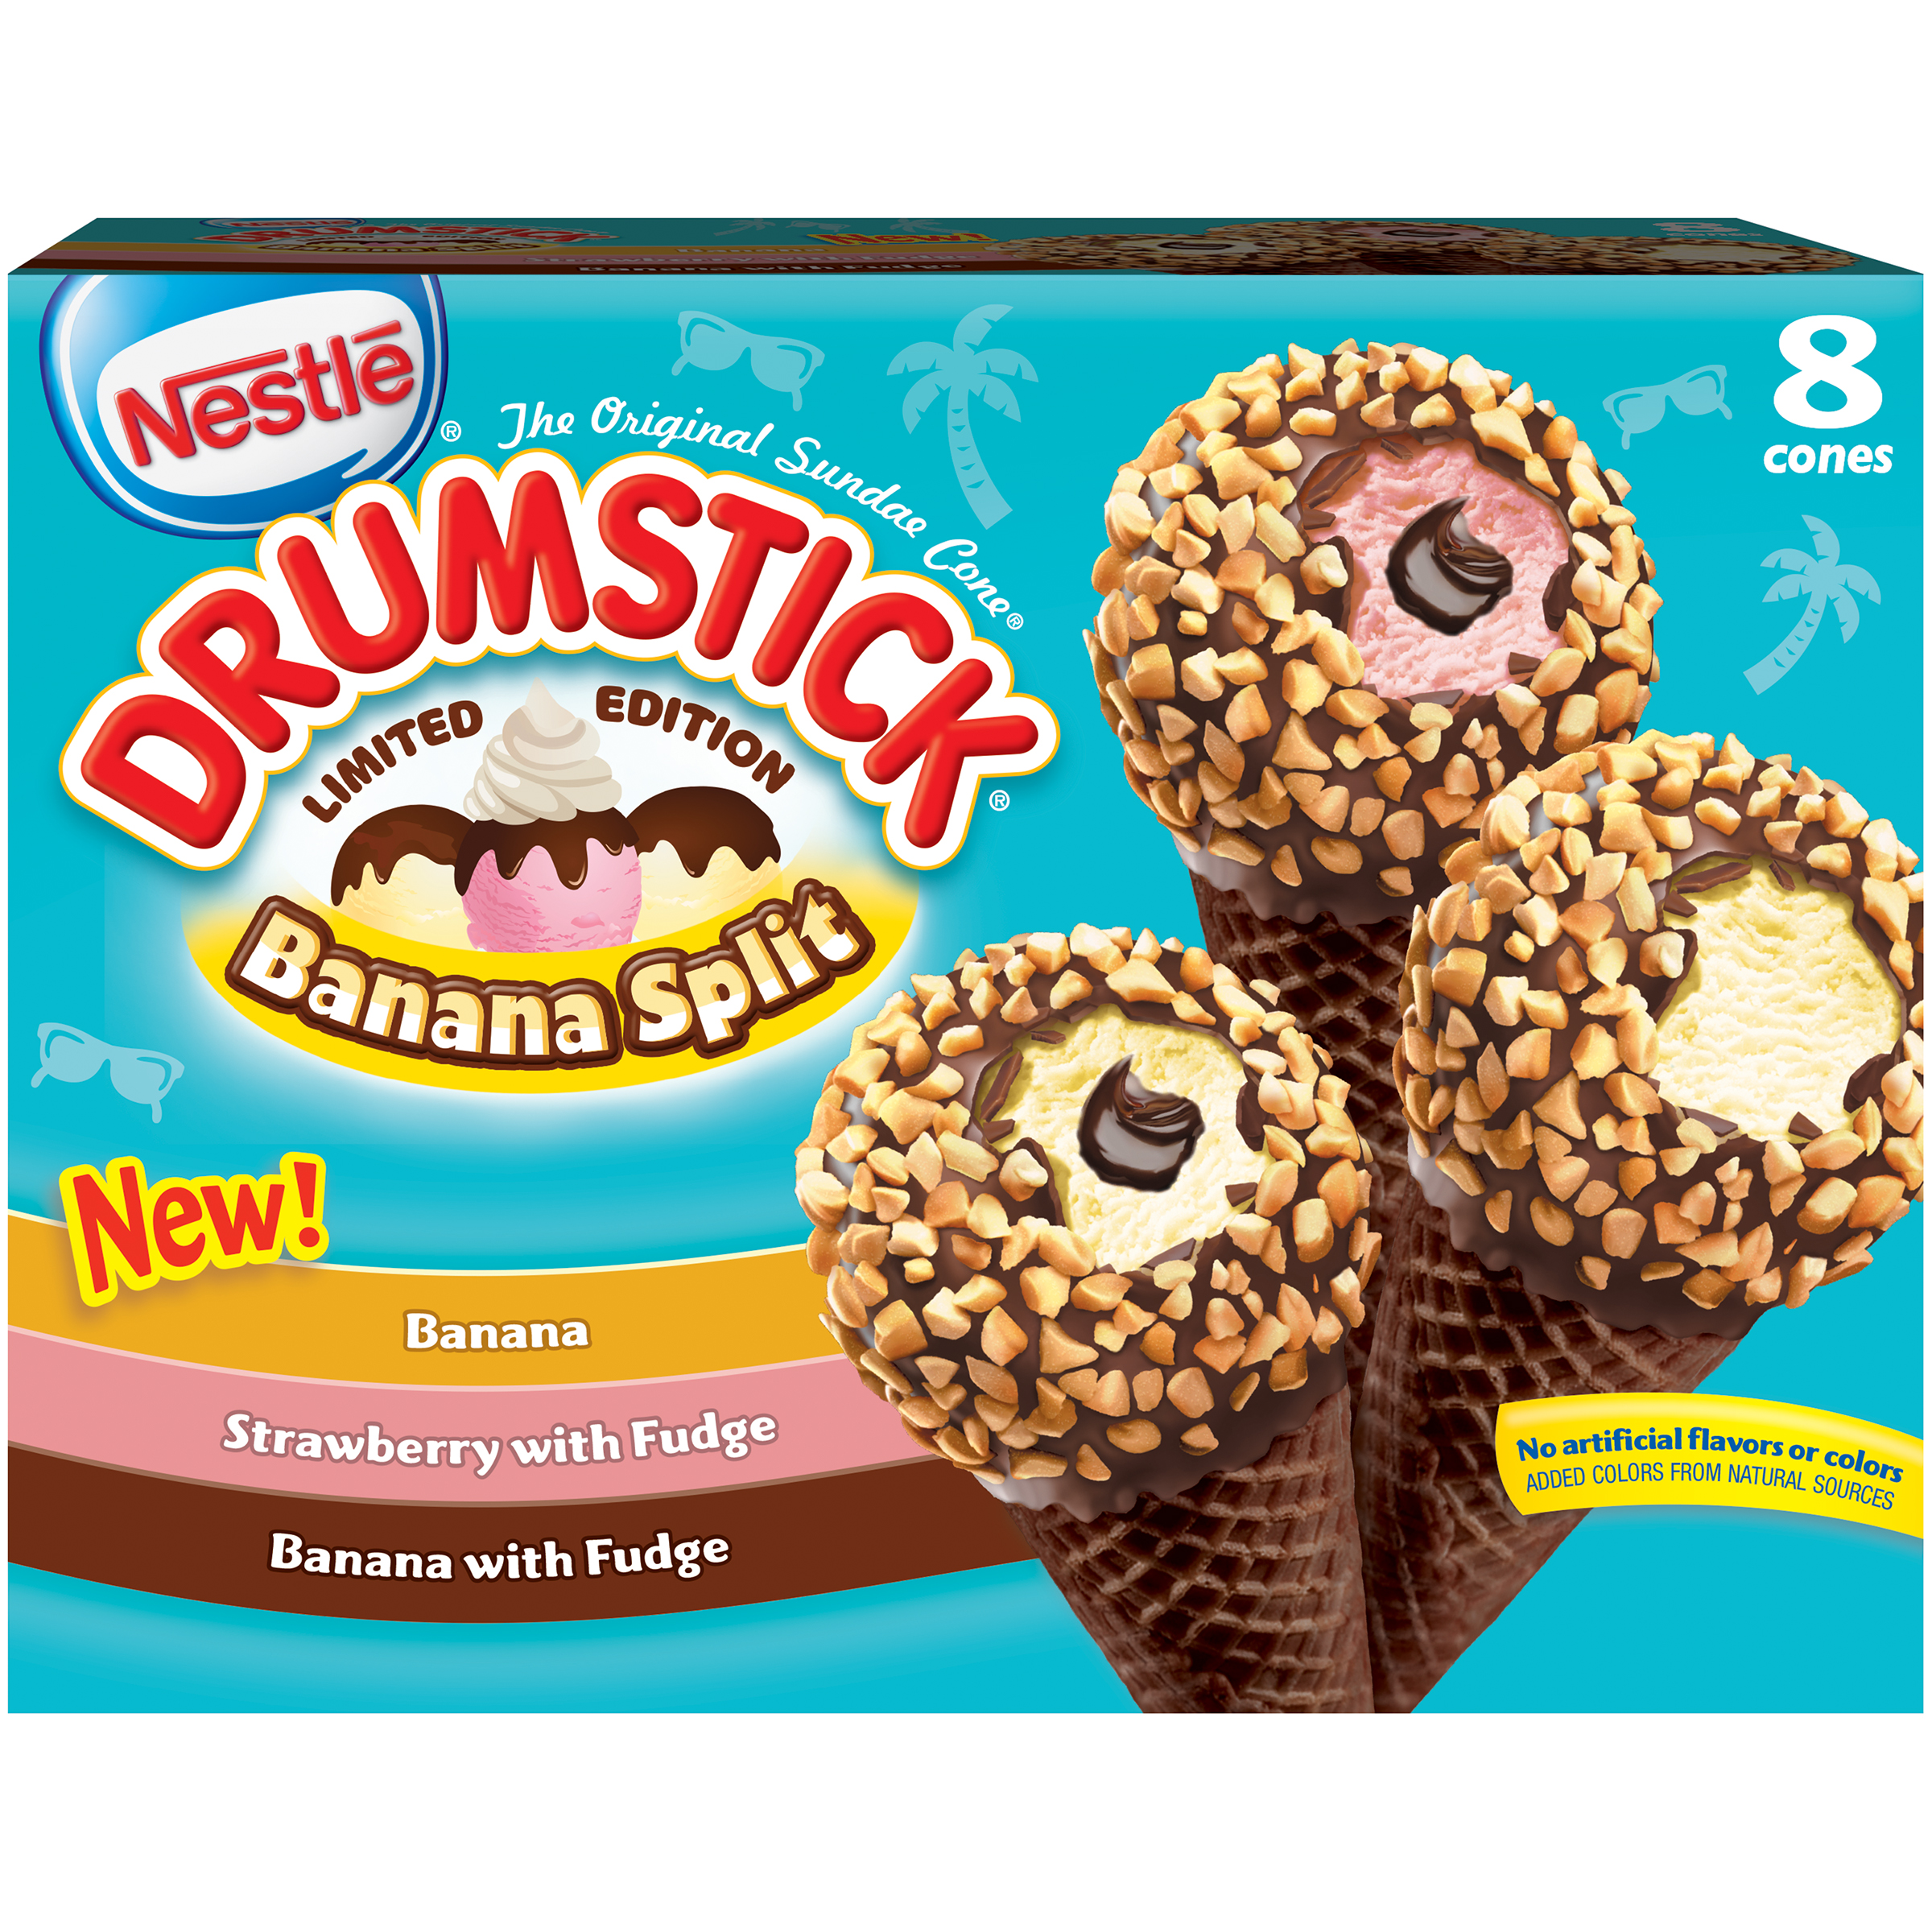 NESTLE DRUMSTICK Limited Edition Frozen Dairy Dessert Cones Variety Pack 8 ct Box